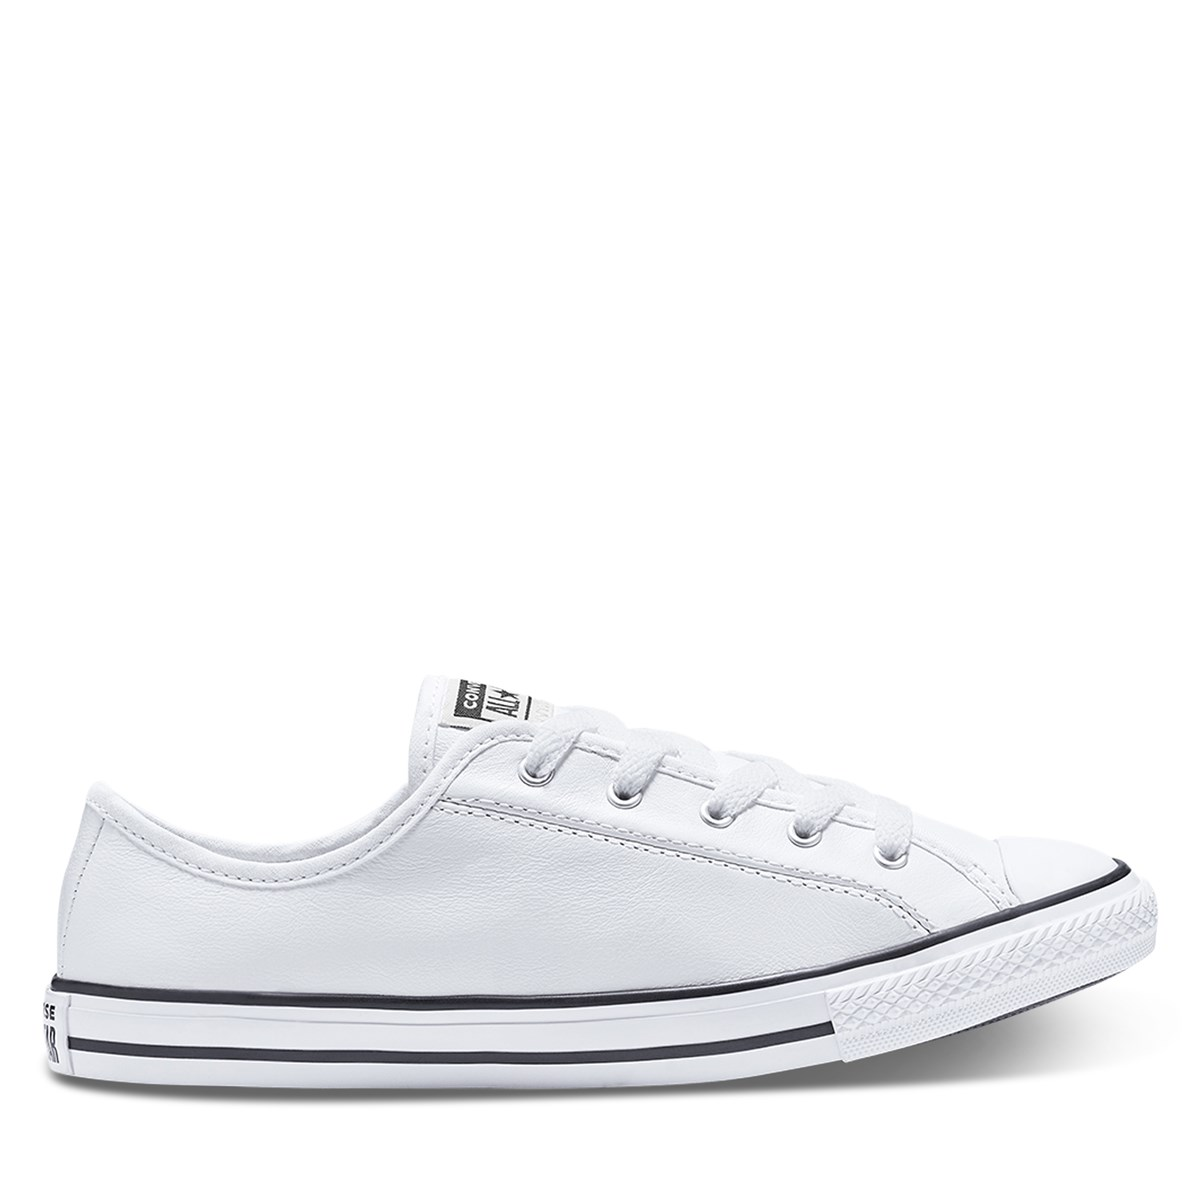 Women's CTAS Dainty Sneakers in White Leather